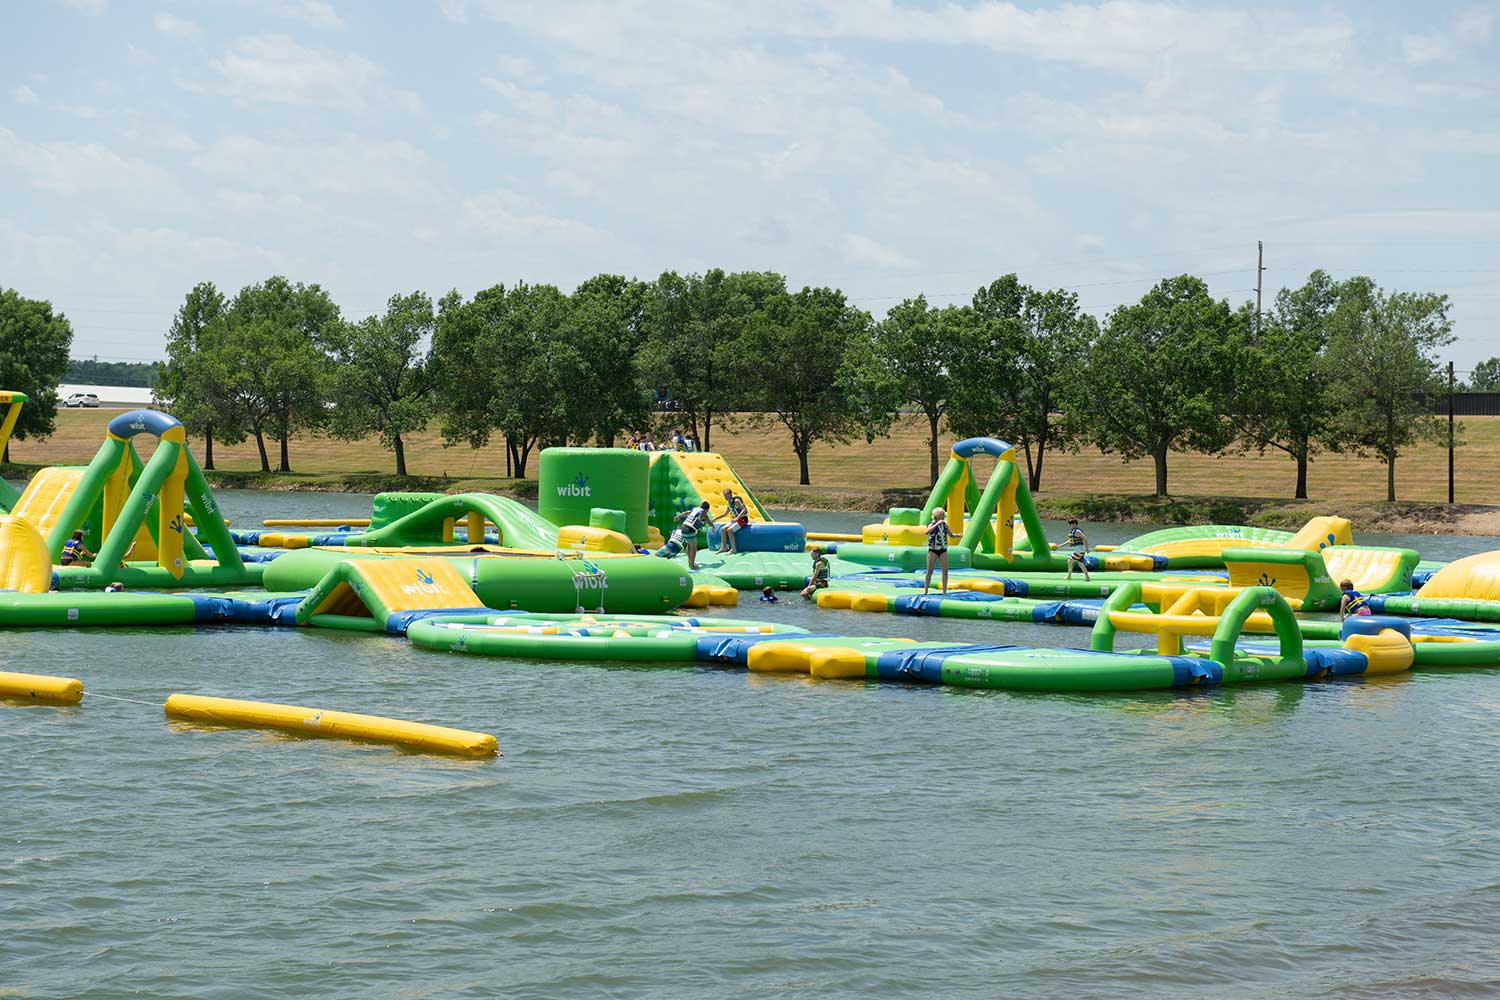 wibit water course, attractions